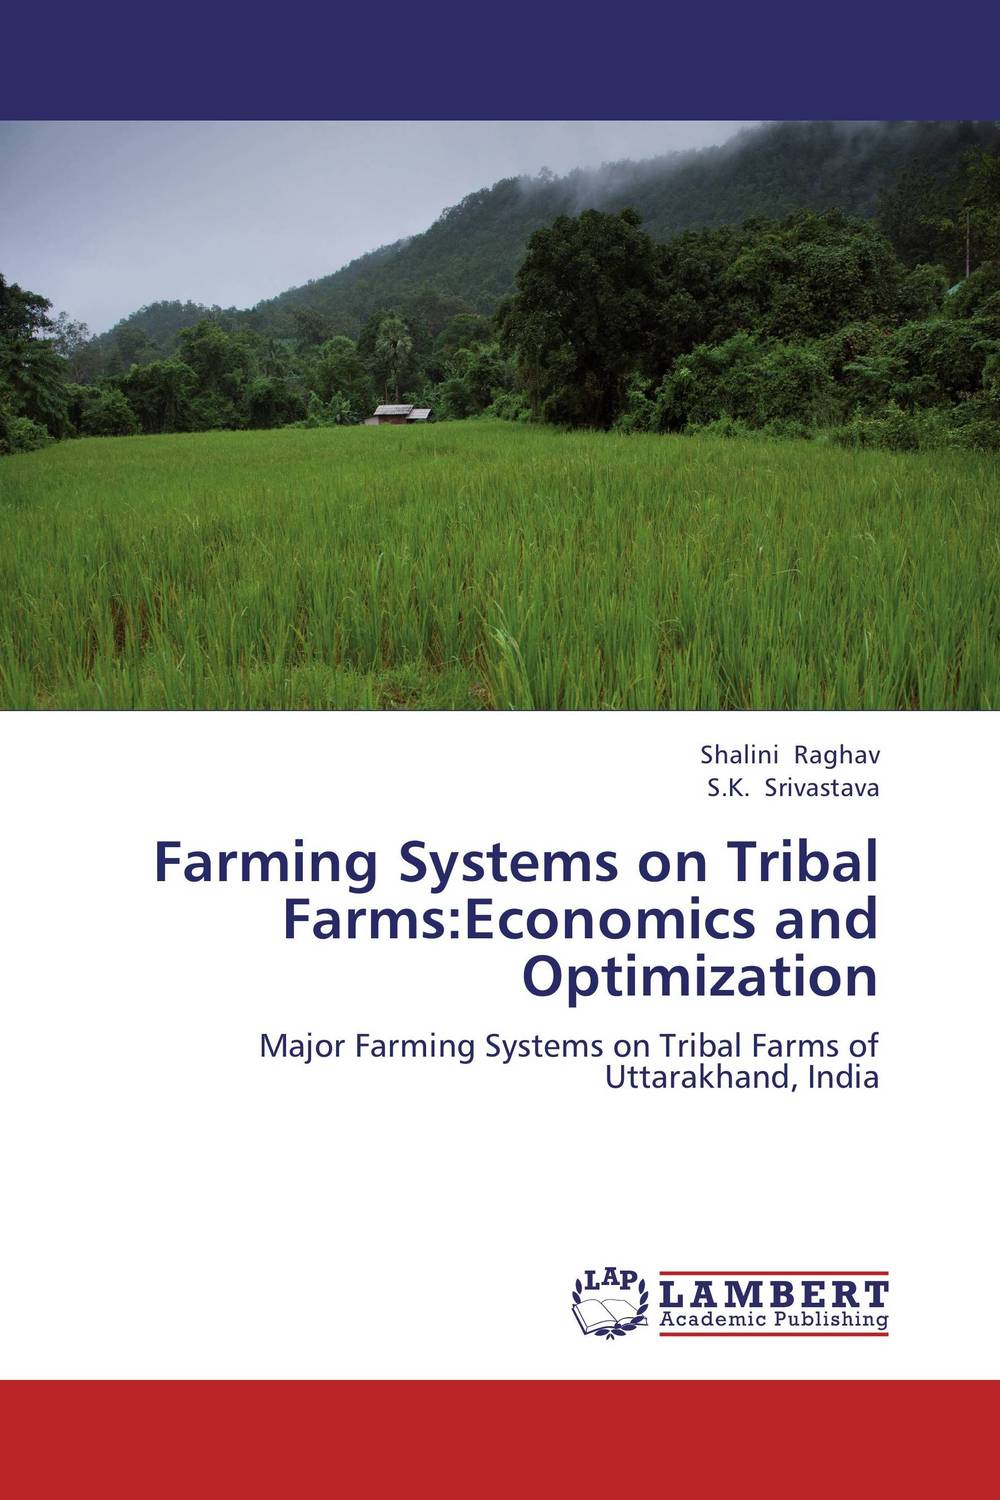 Farming Systems on Tribal Farms:Economics and Optimization reena garbyal alka goel and isha tyagi traditional costumes of rung tribe bhotiya in uttarakhand india